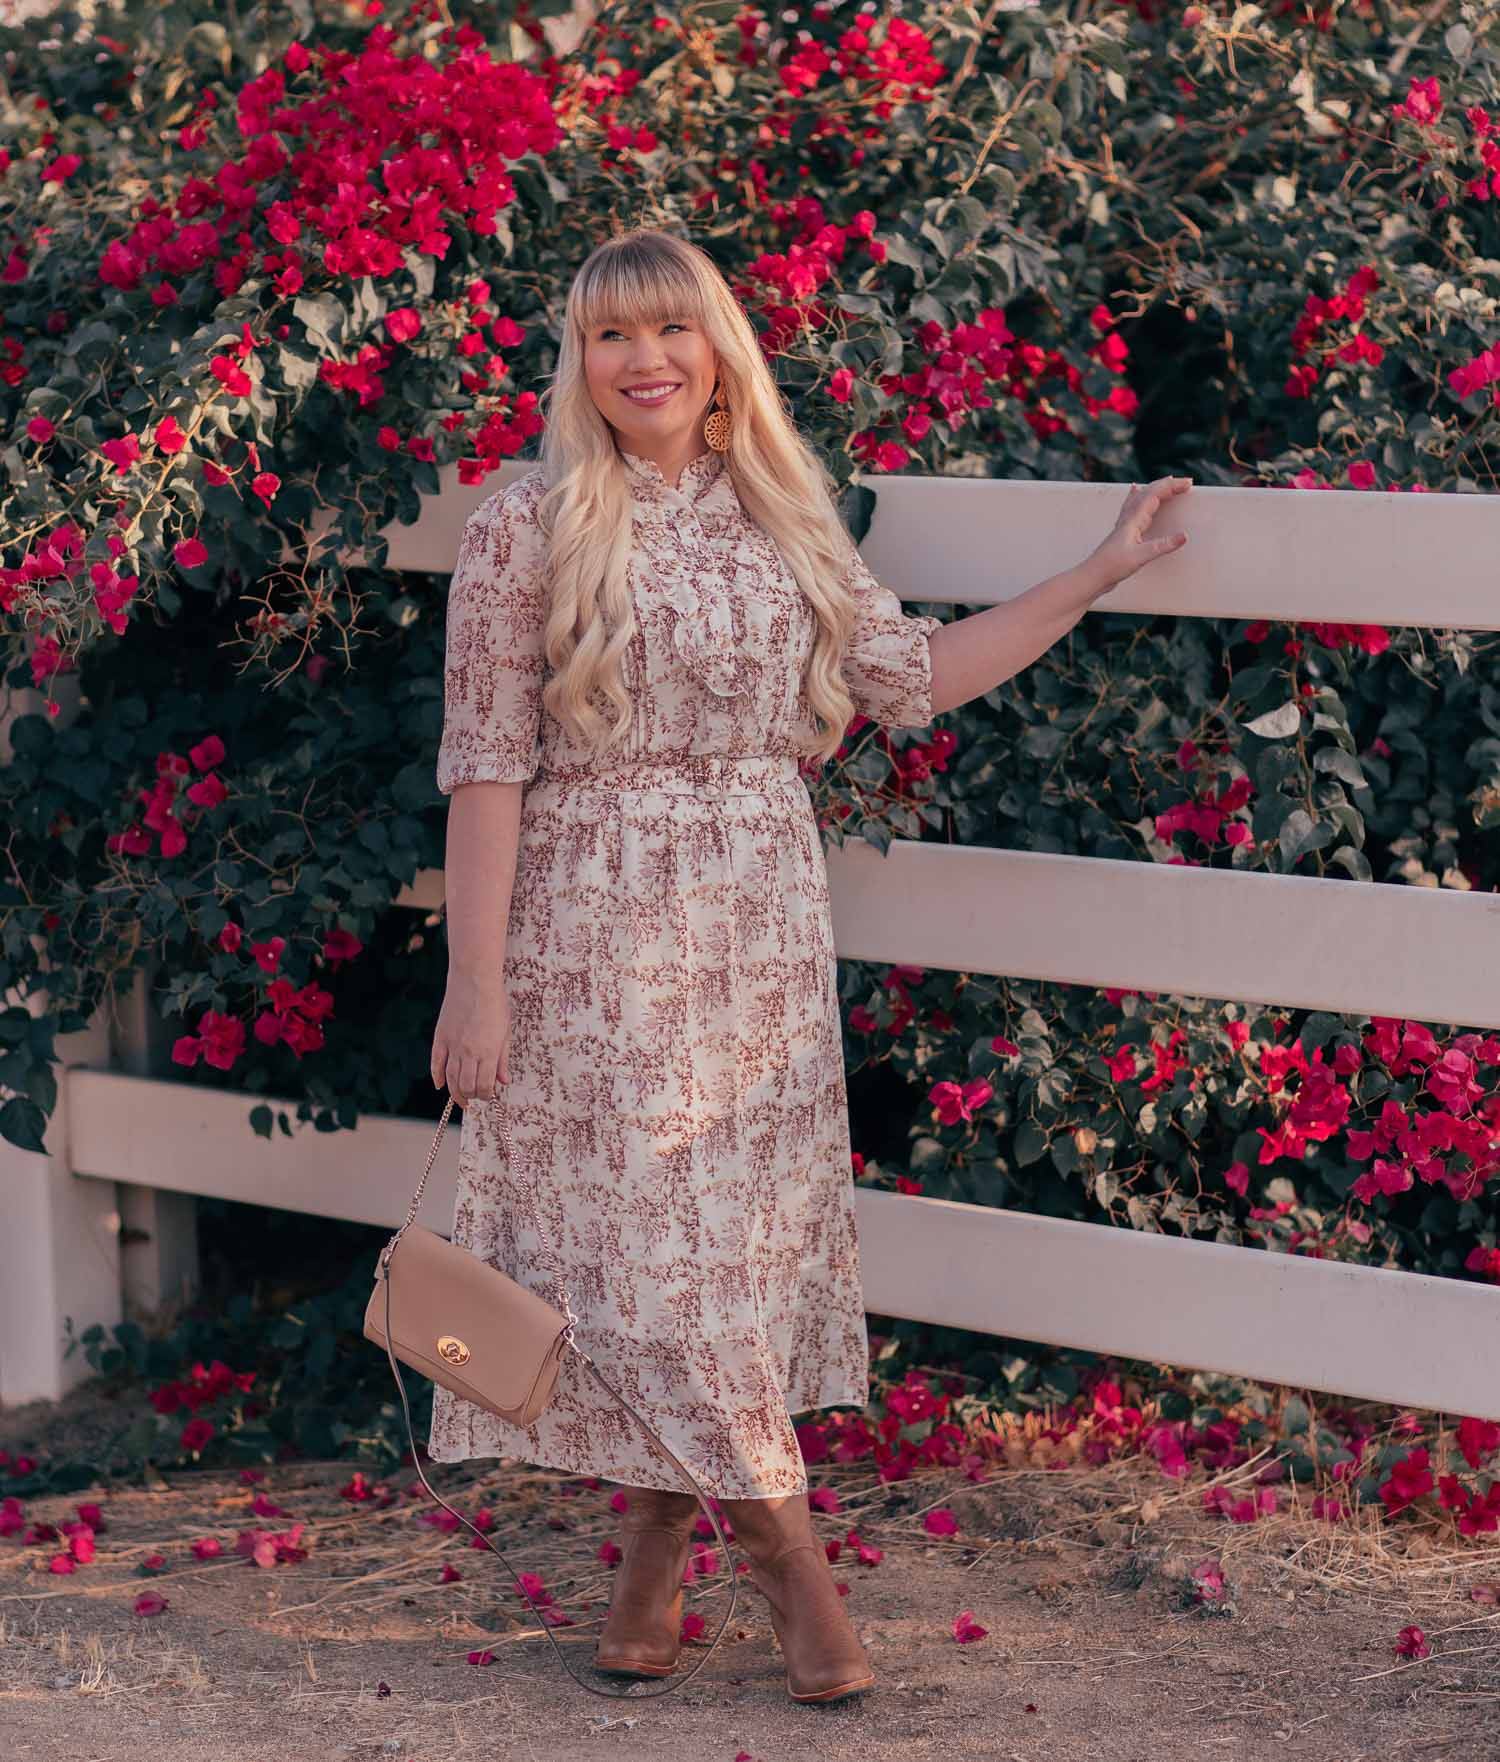 Fashion Blogger Elizabeth Hugen of Lizzie in Lace share How to Wear a Feminine Fall Dress With Brown Boots